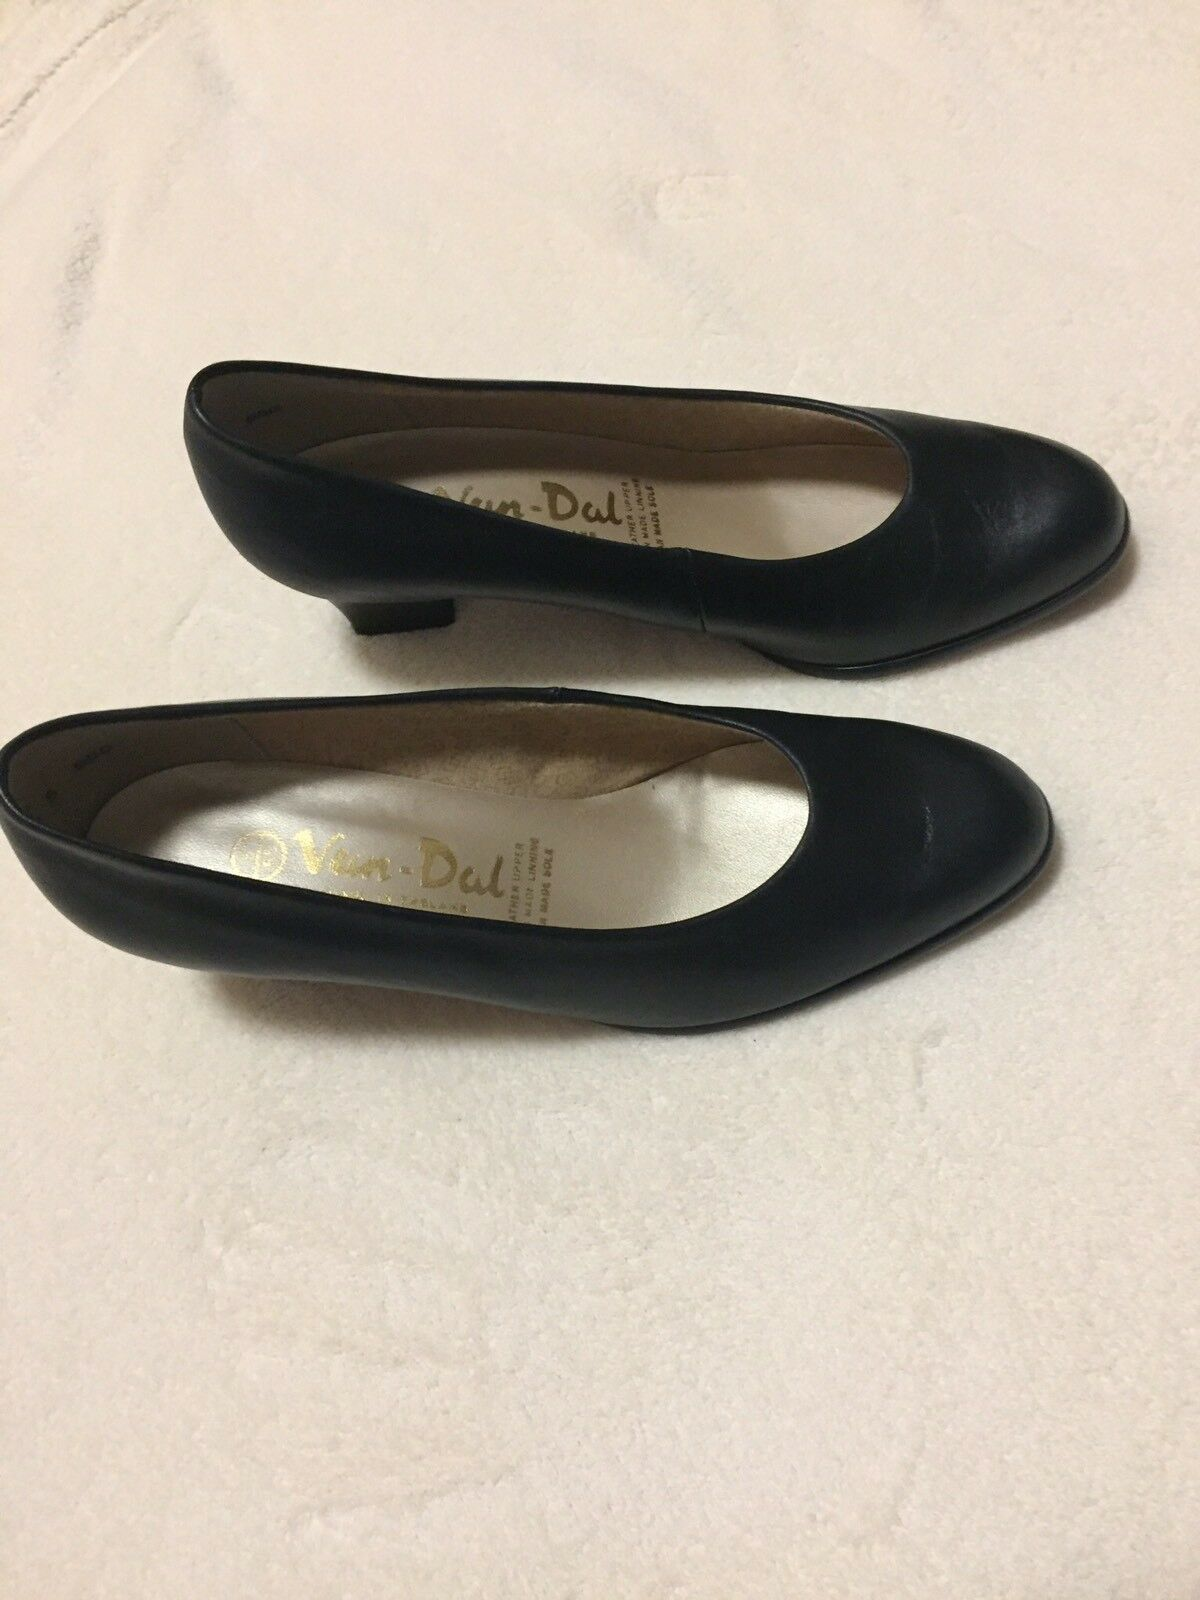 Van Dal Ladies shoes Size 5